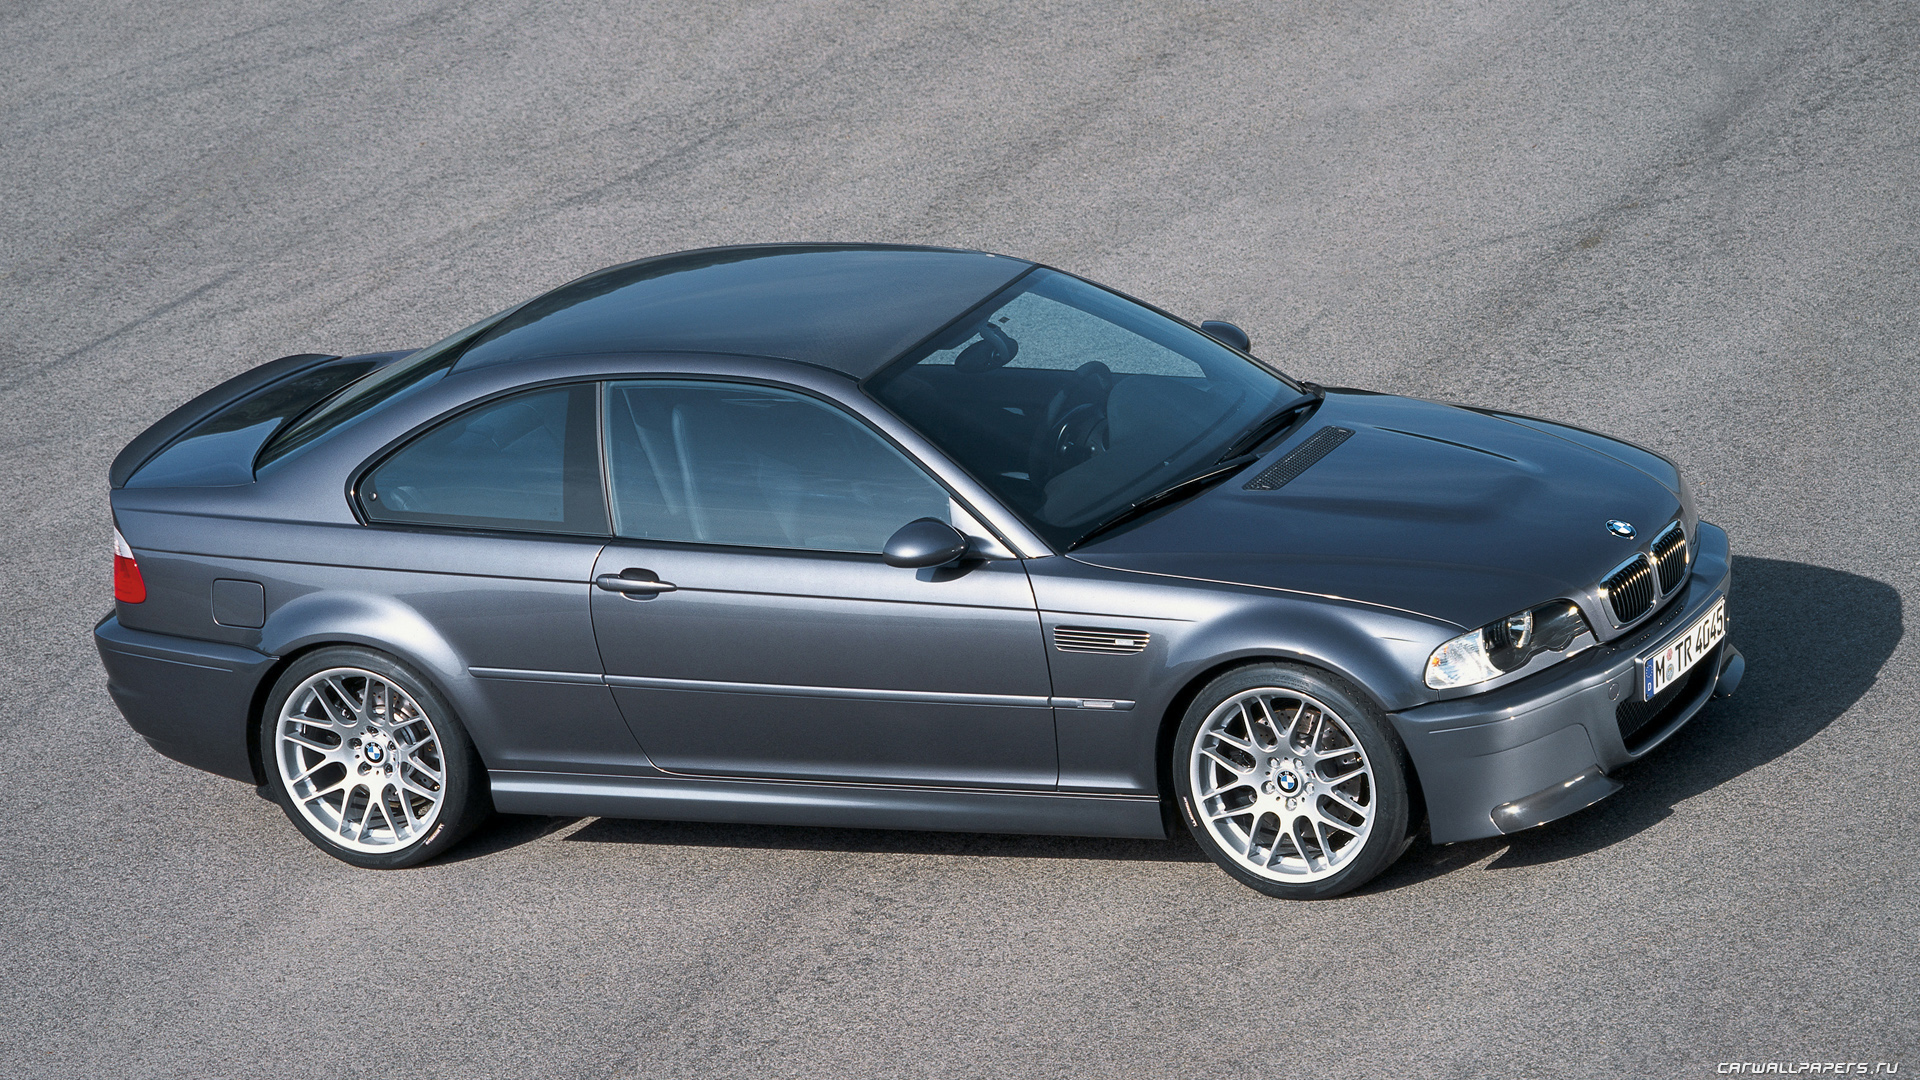 2003 bmw m3 coupe e46 pictures information and specs auto. Black Bedroom Furniture Sets. Home Design Ideas